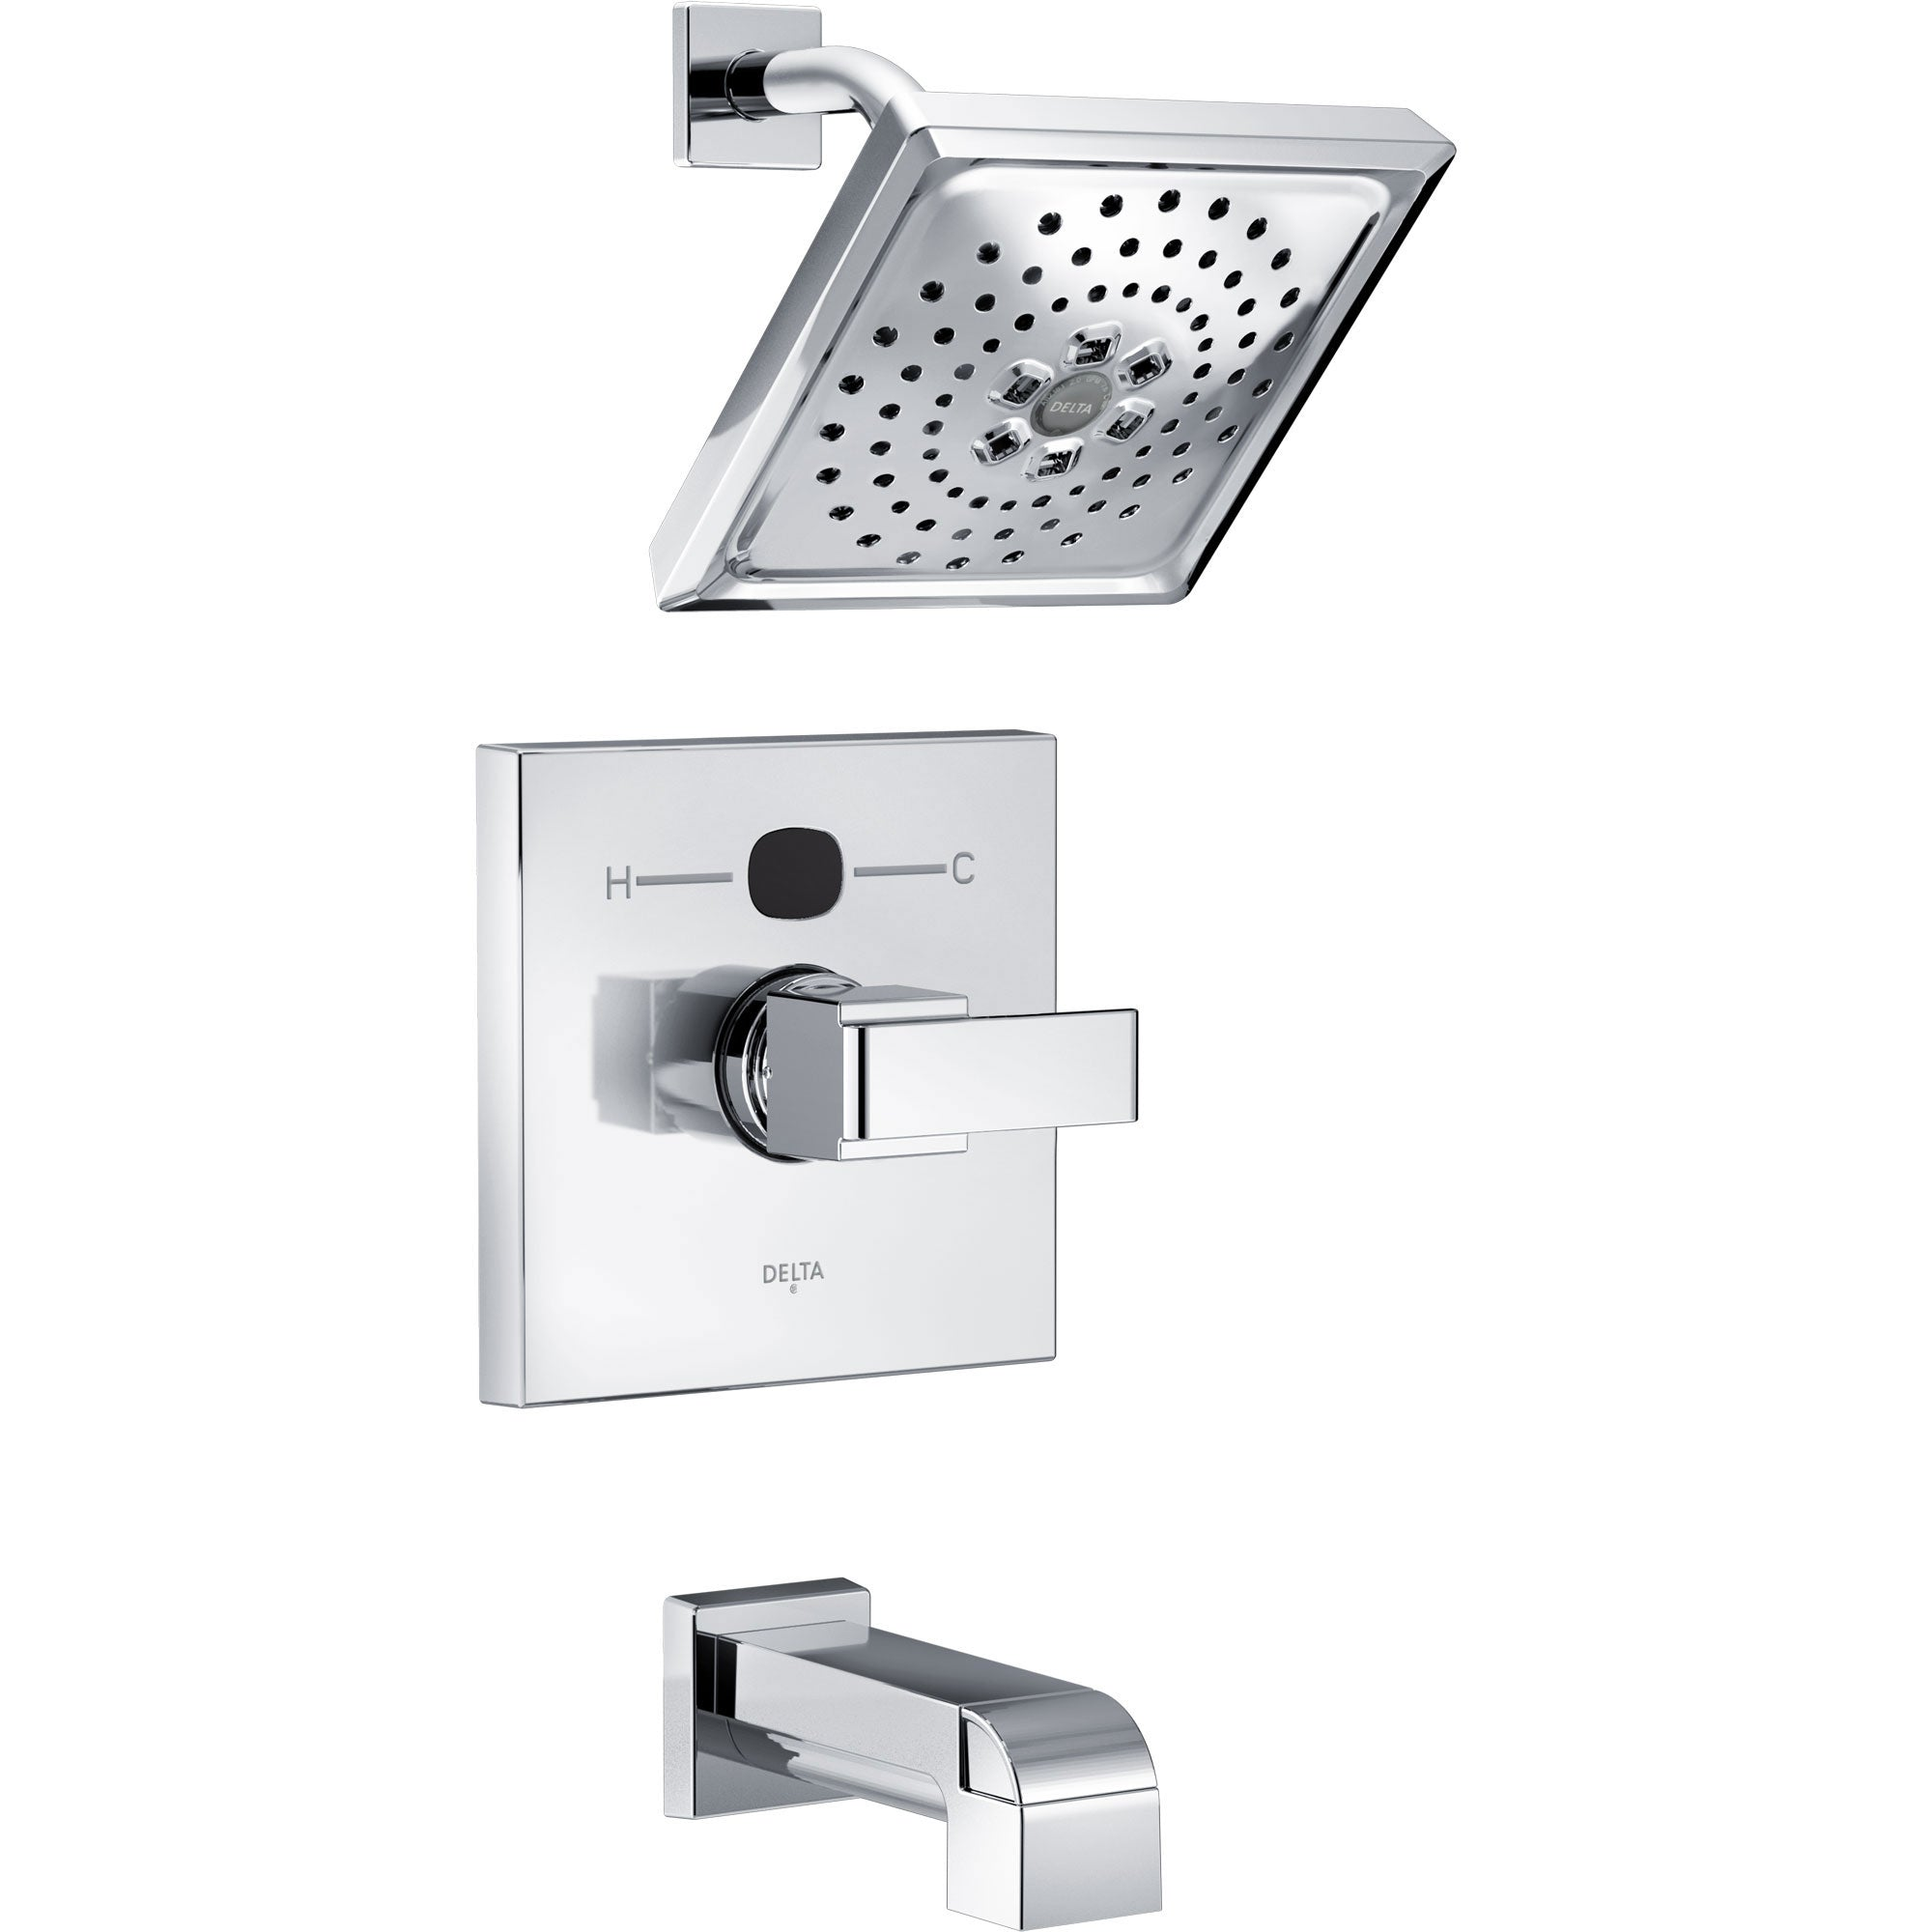 Delta Ara Chrome Finish Angular Modern Square Temp2O Tub and Shower Combination Faucet with Digital Display INCLUDES Rough-in Valve with Stops D1217V